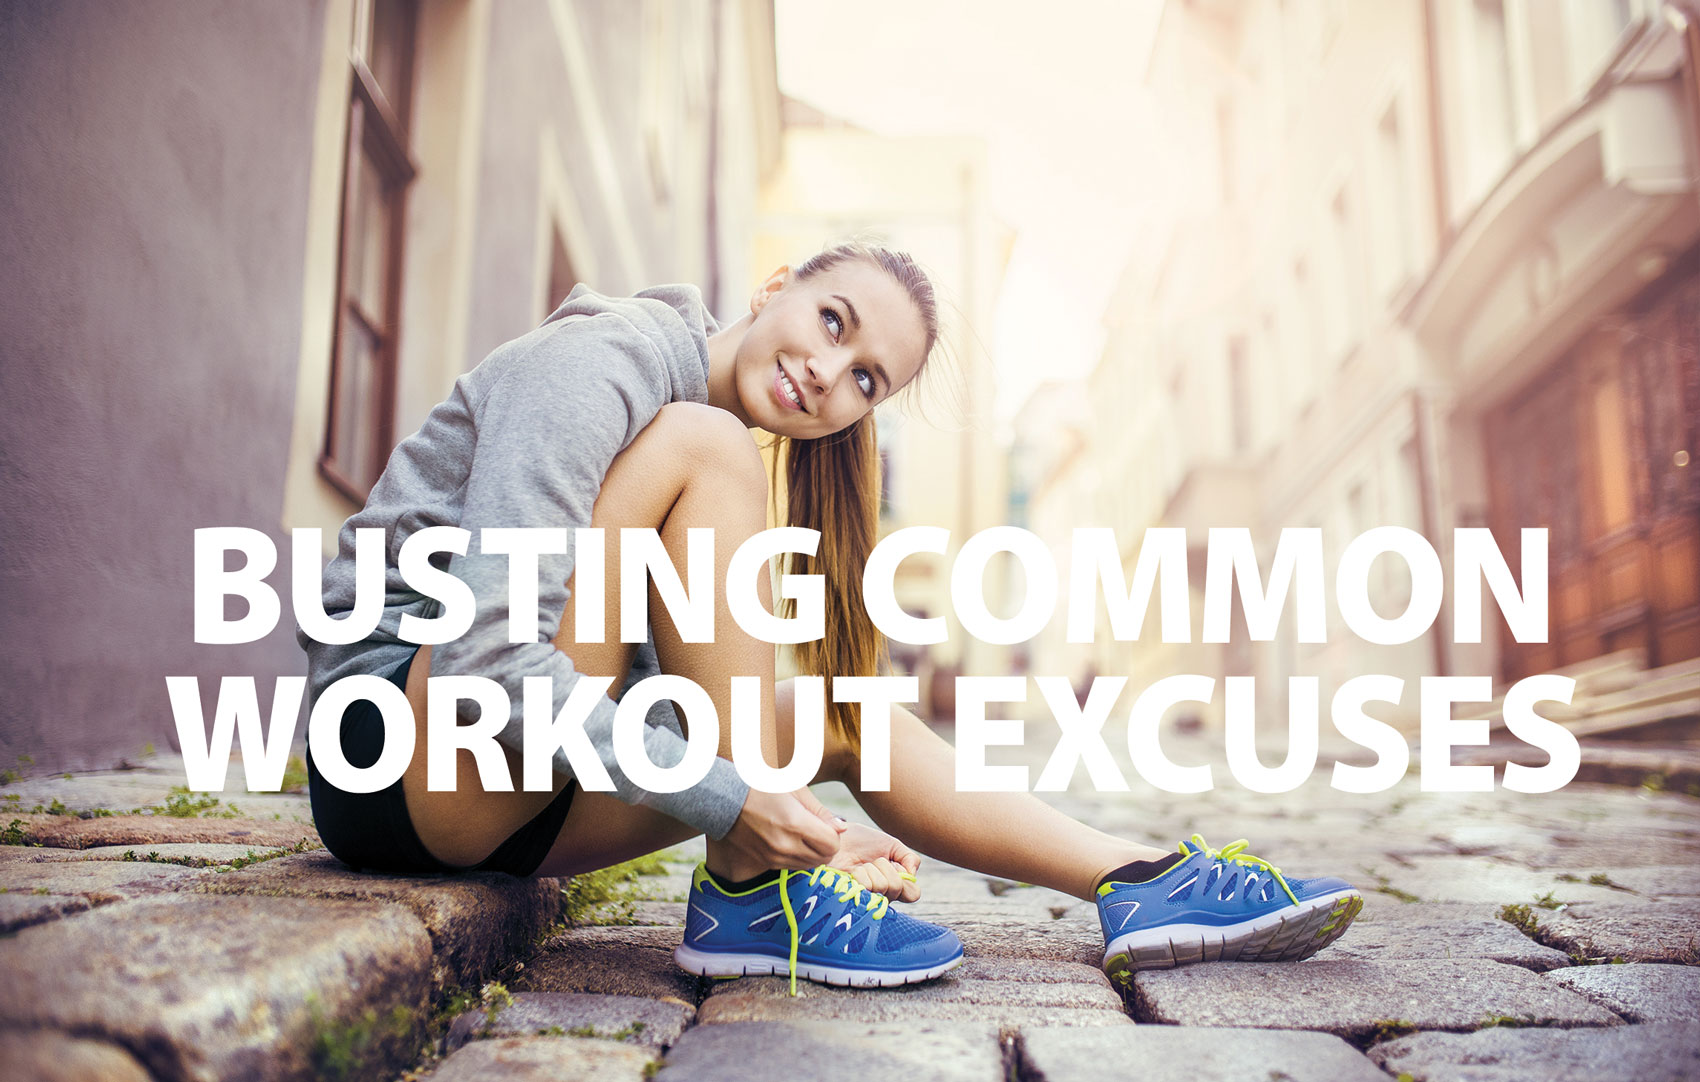 Busting Common Workout Excuses